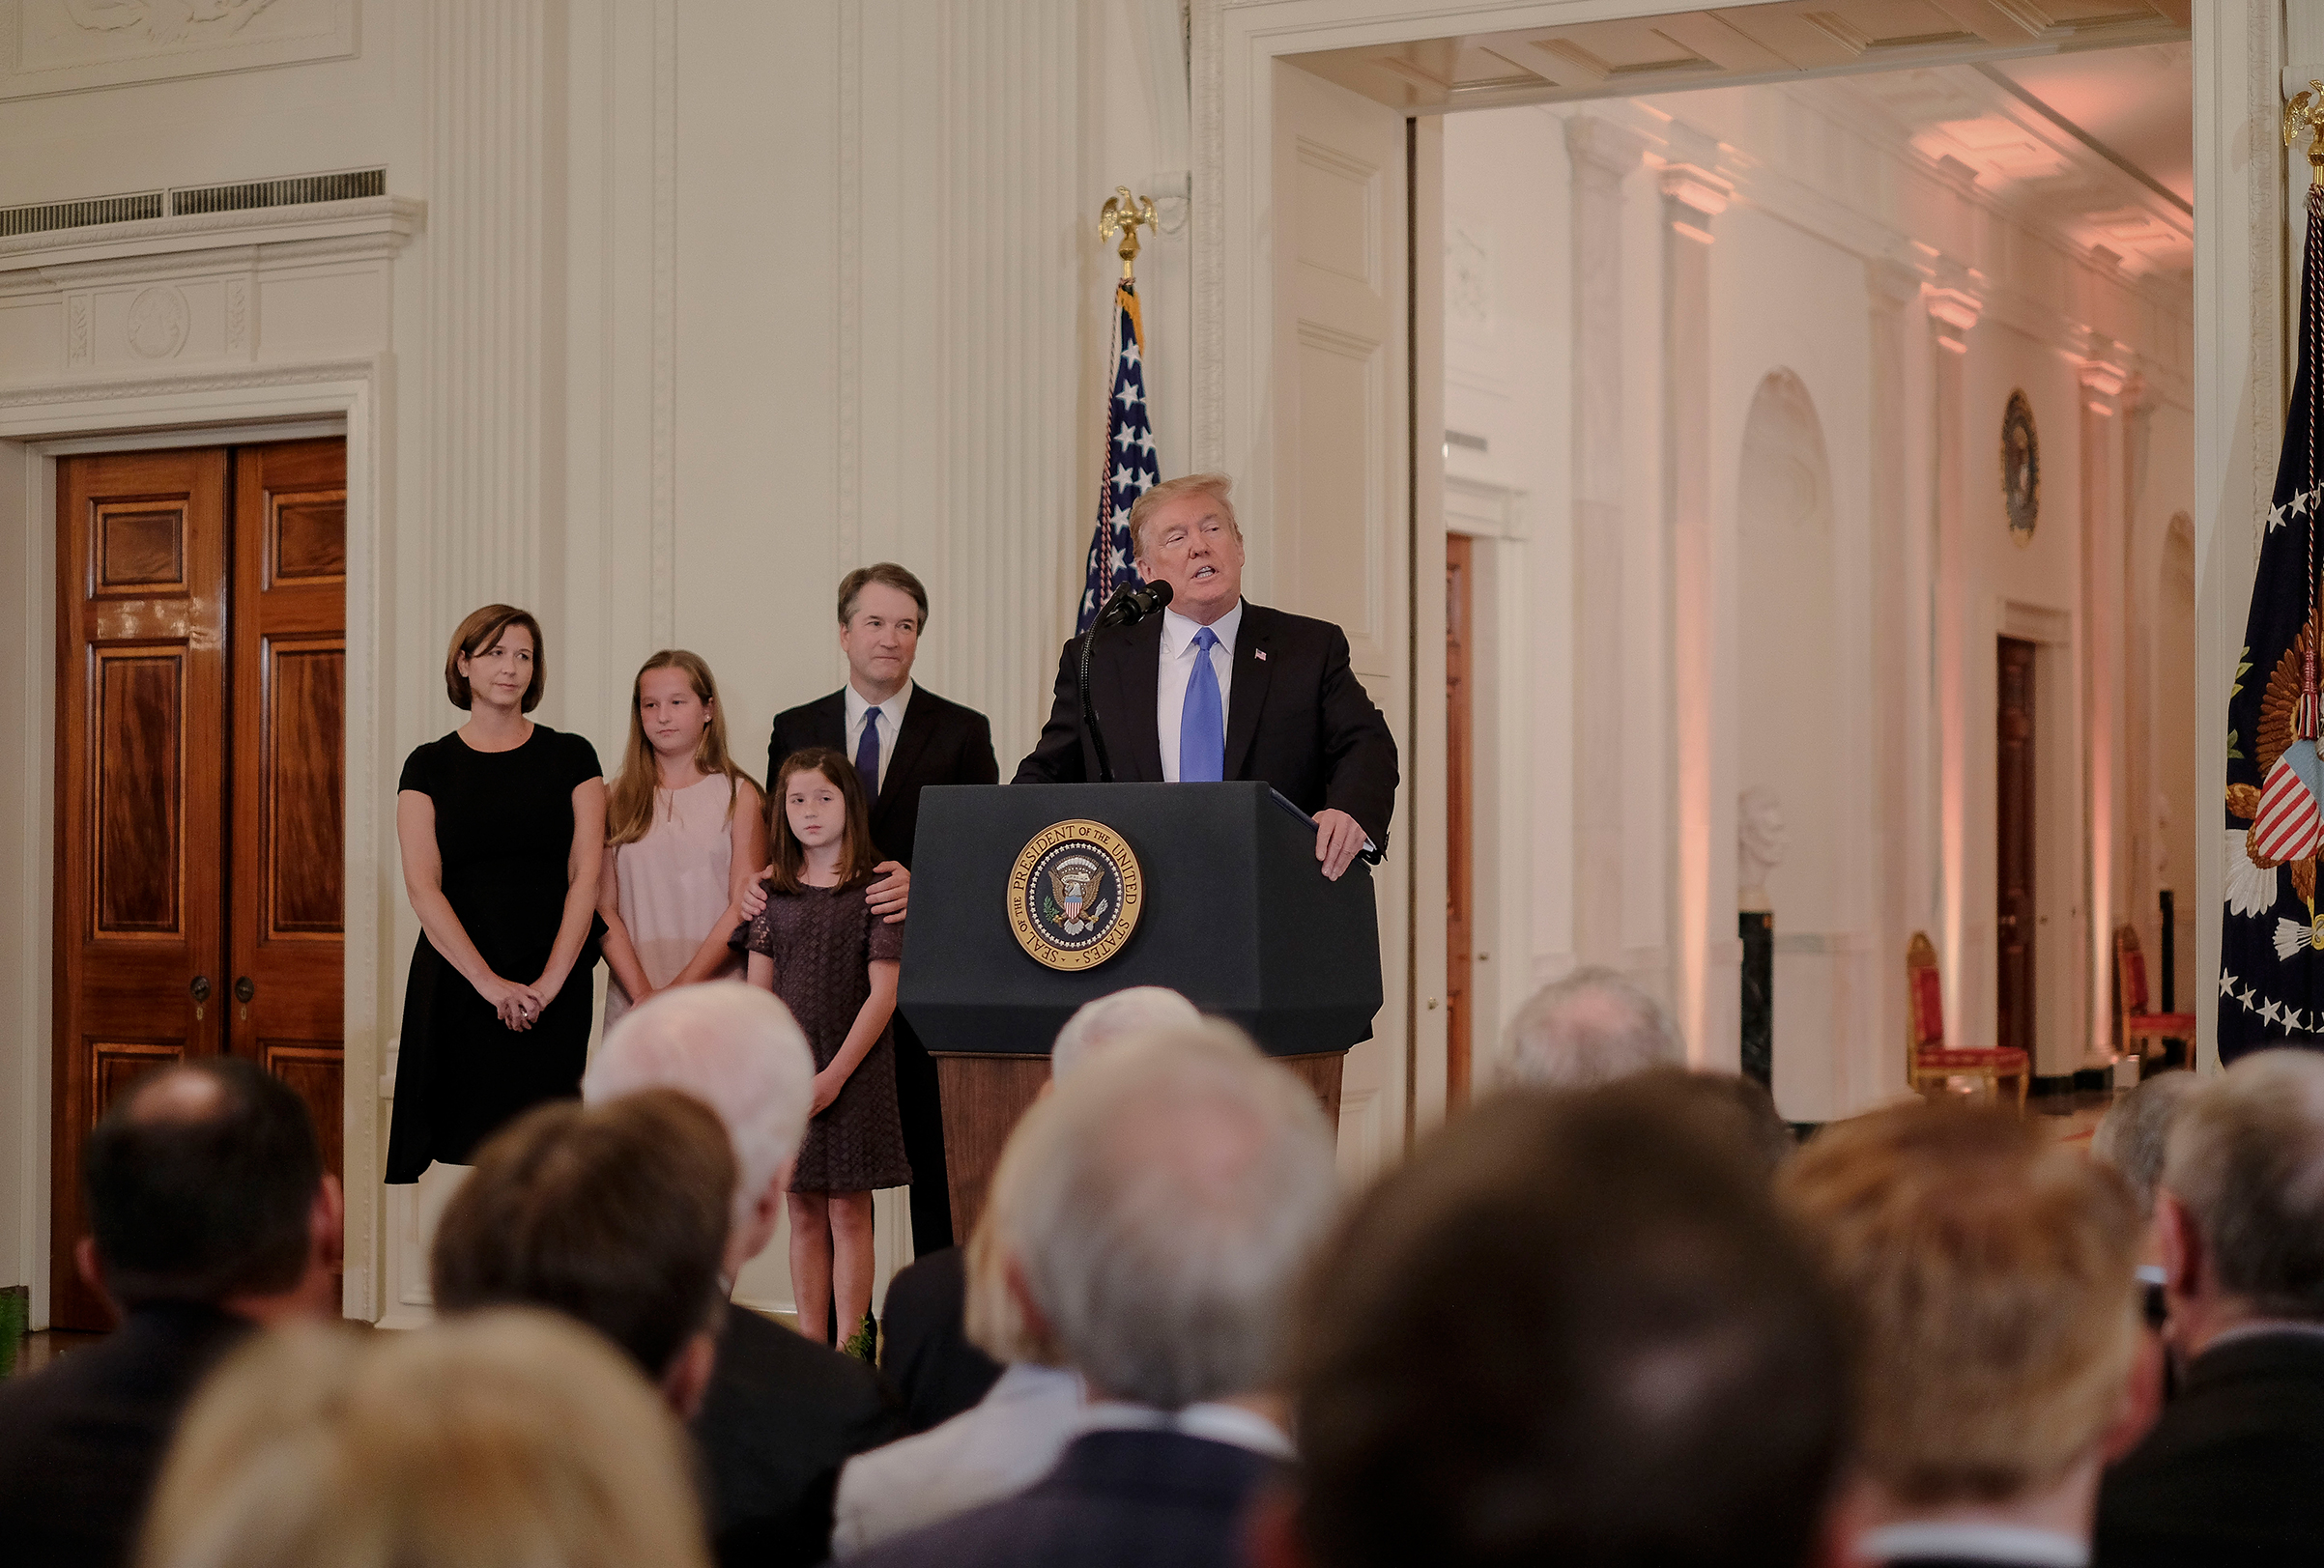 President Trump nominates Judge Brett Kavanaugh to the Supreme Court during an event in the East Room of the White House in Washington on July 9, 2018.